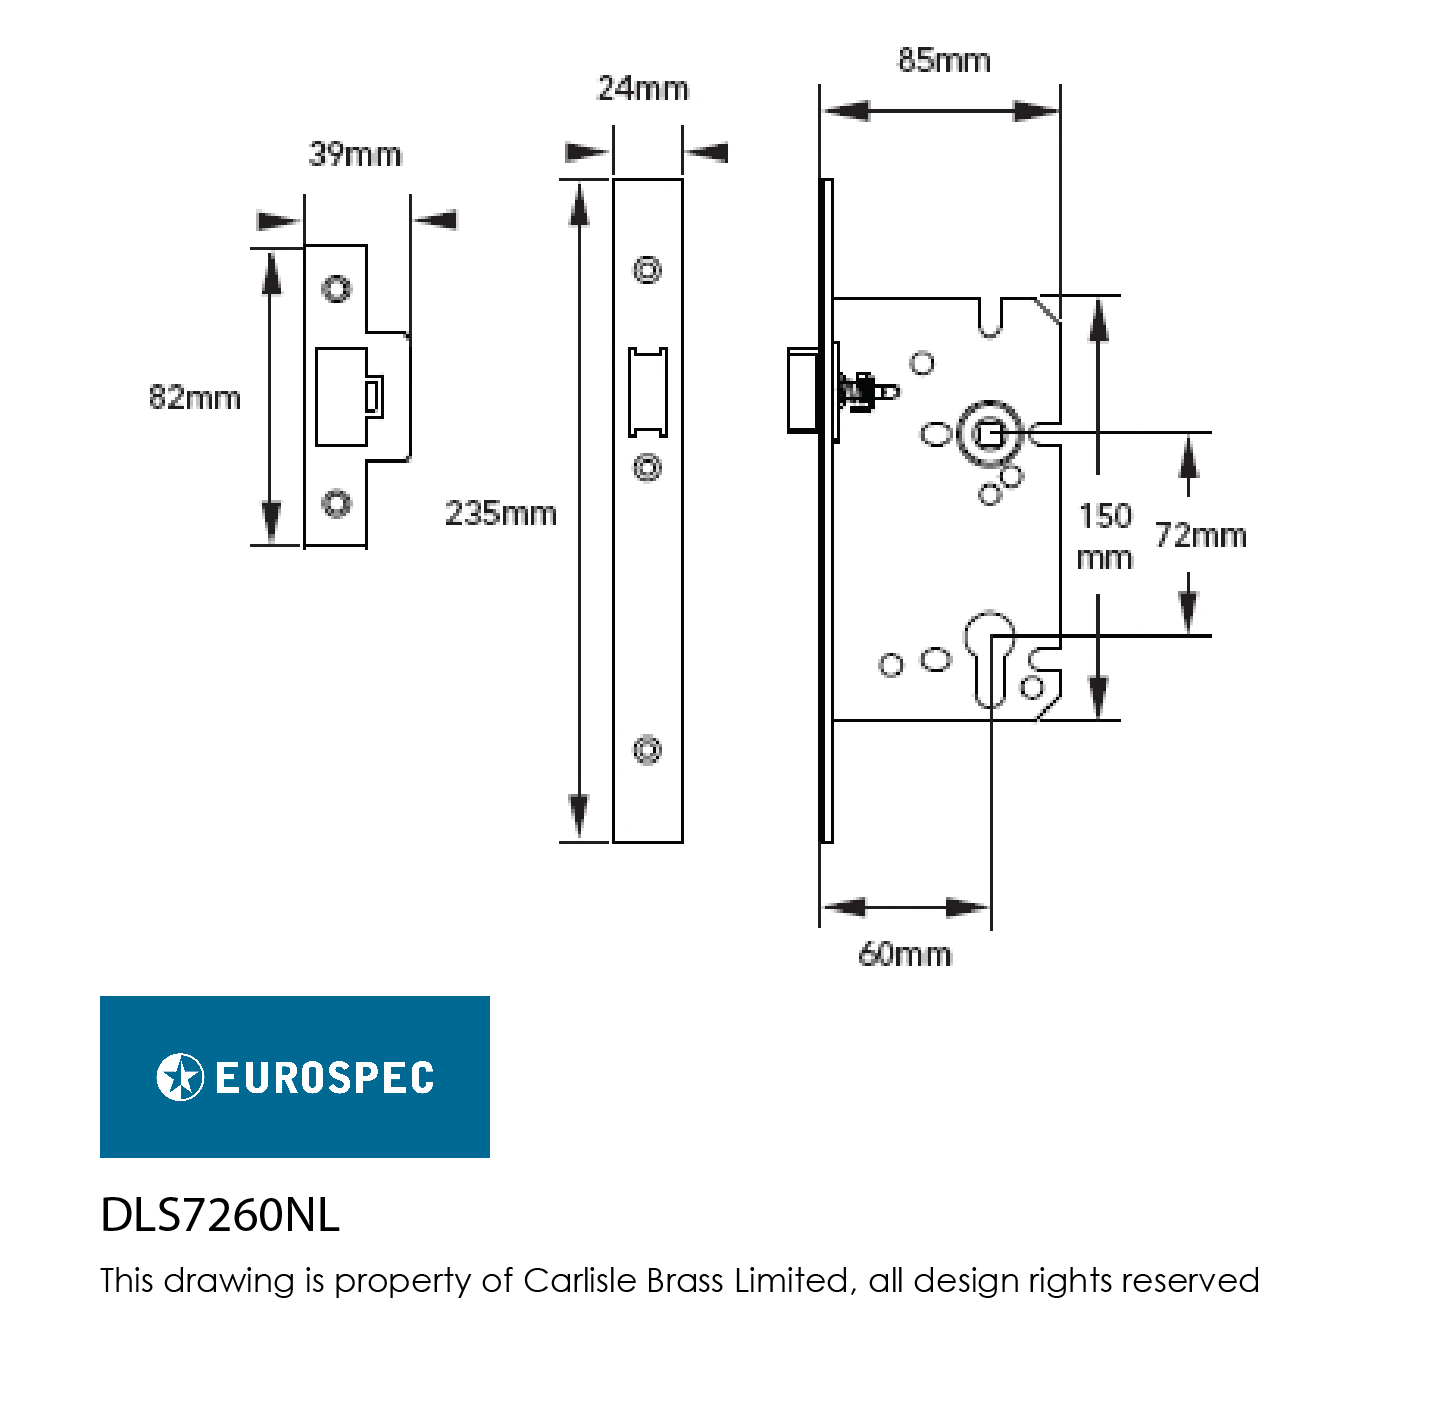 Easi T Din Euro Profile Nightlatch Locks And Latches Latch Circuit Diagram This Night Provides A Good Degree Of Security Carries 10 Year Mechanical Guarantee It Has Been Ce Certifire Tested